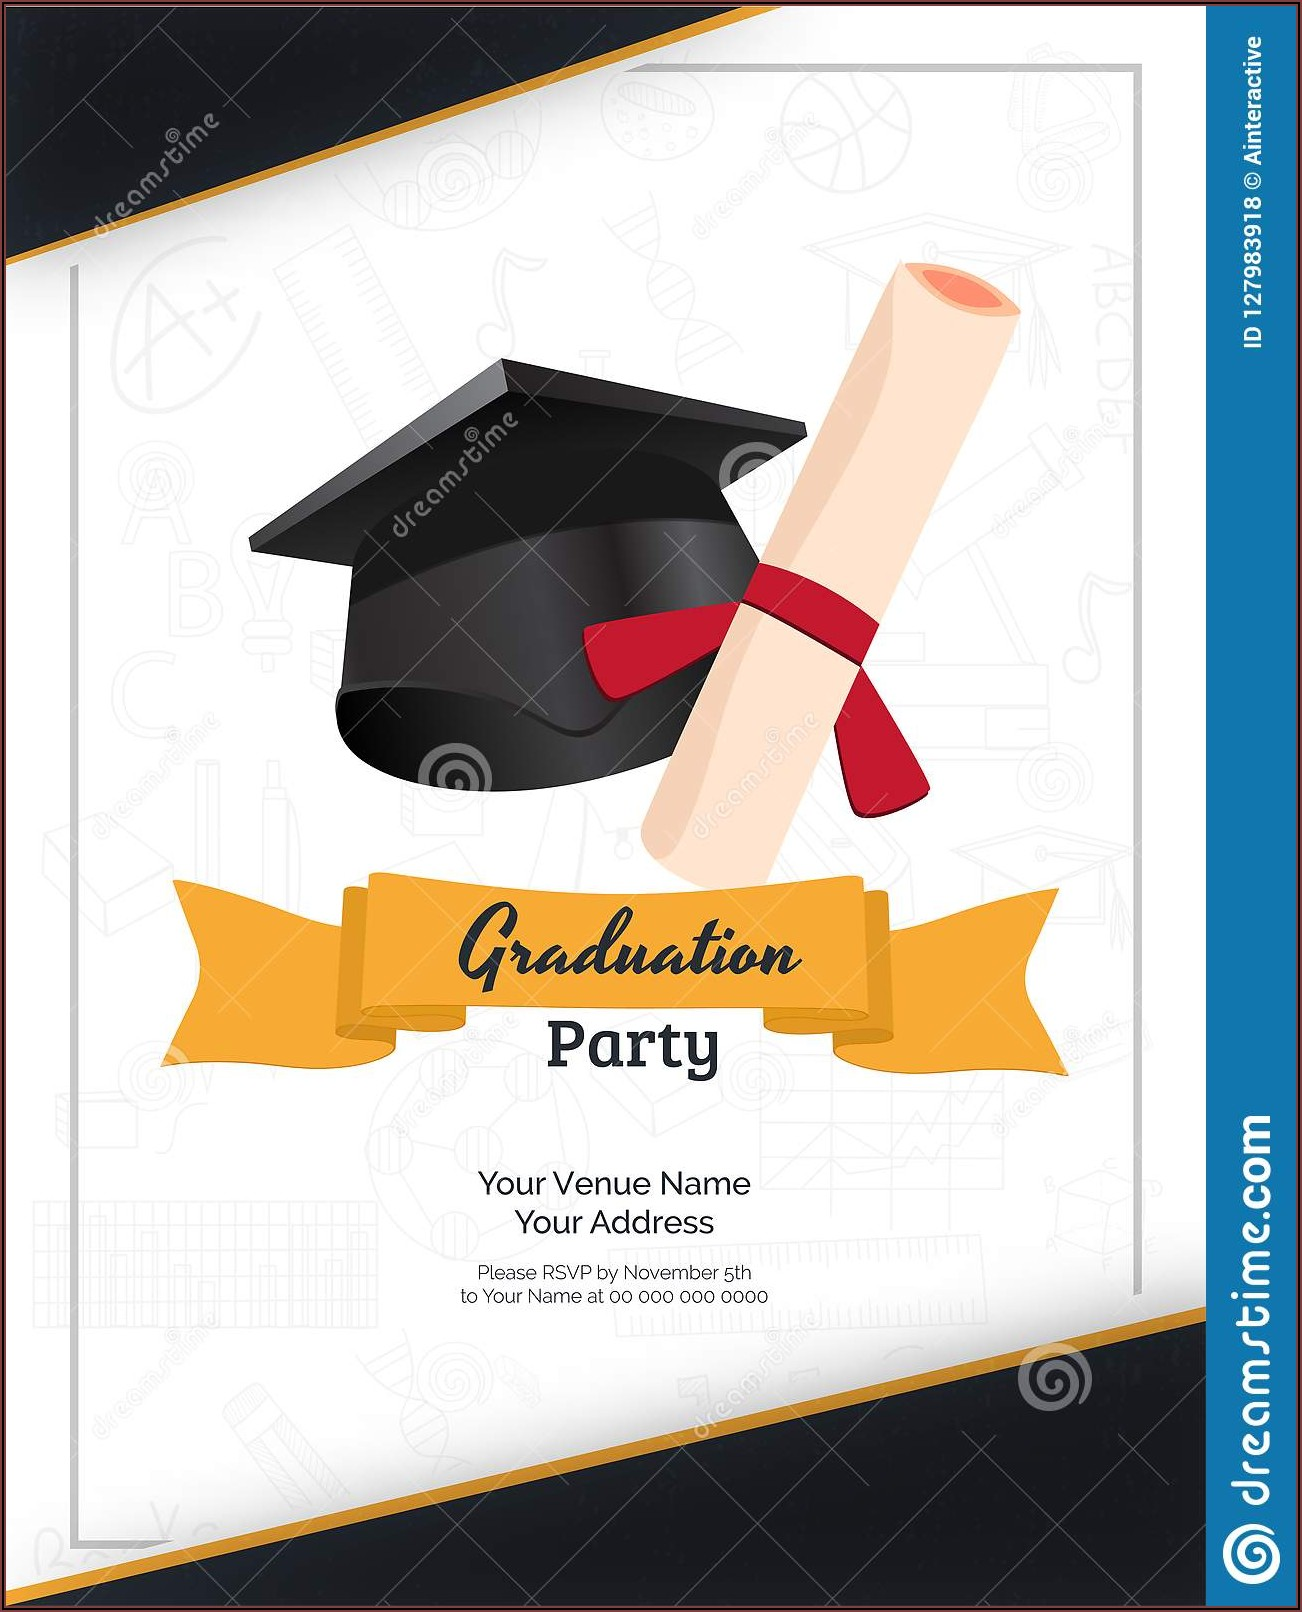 Graduation Day Invitation Design Templates